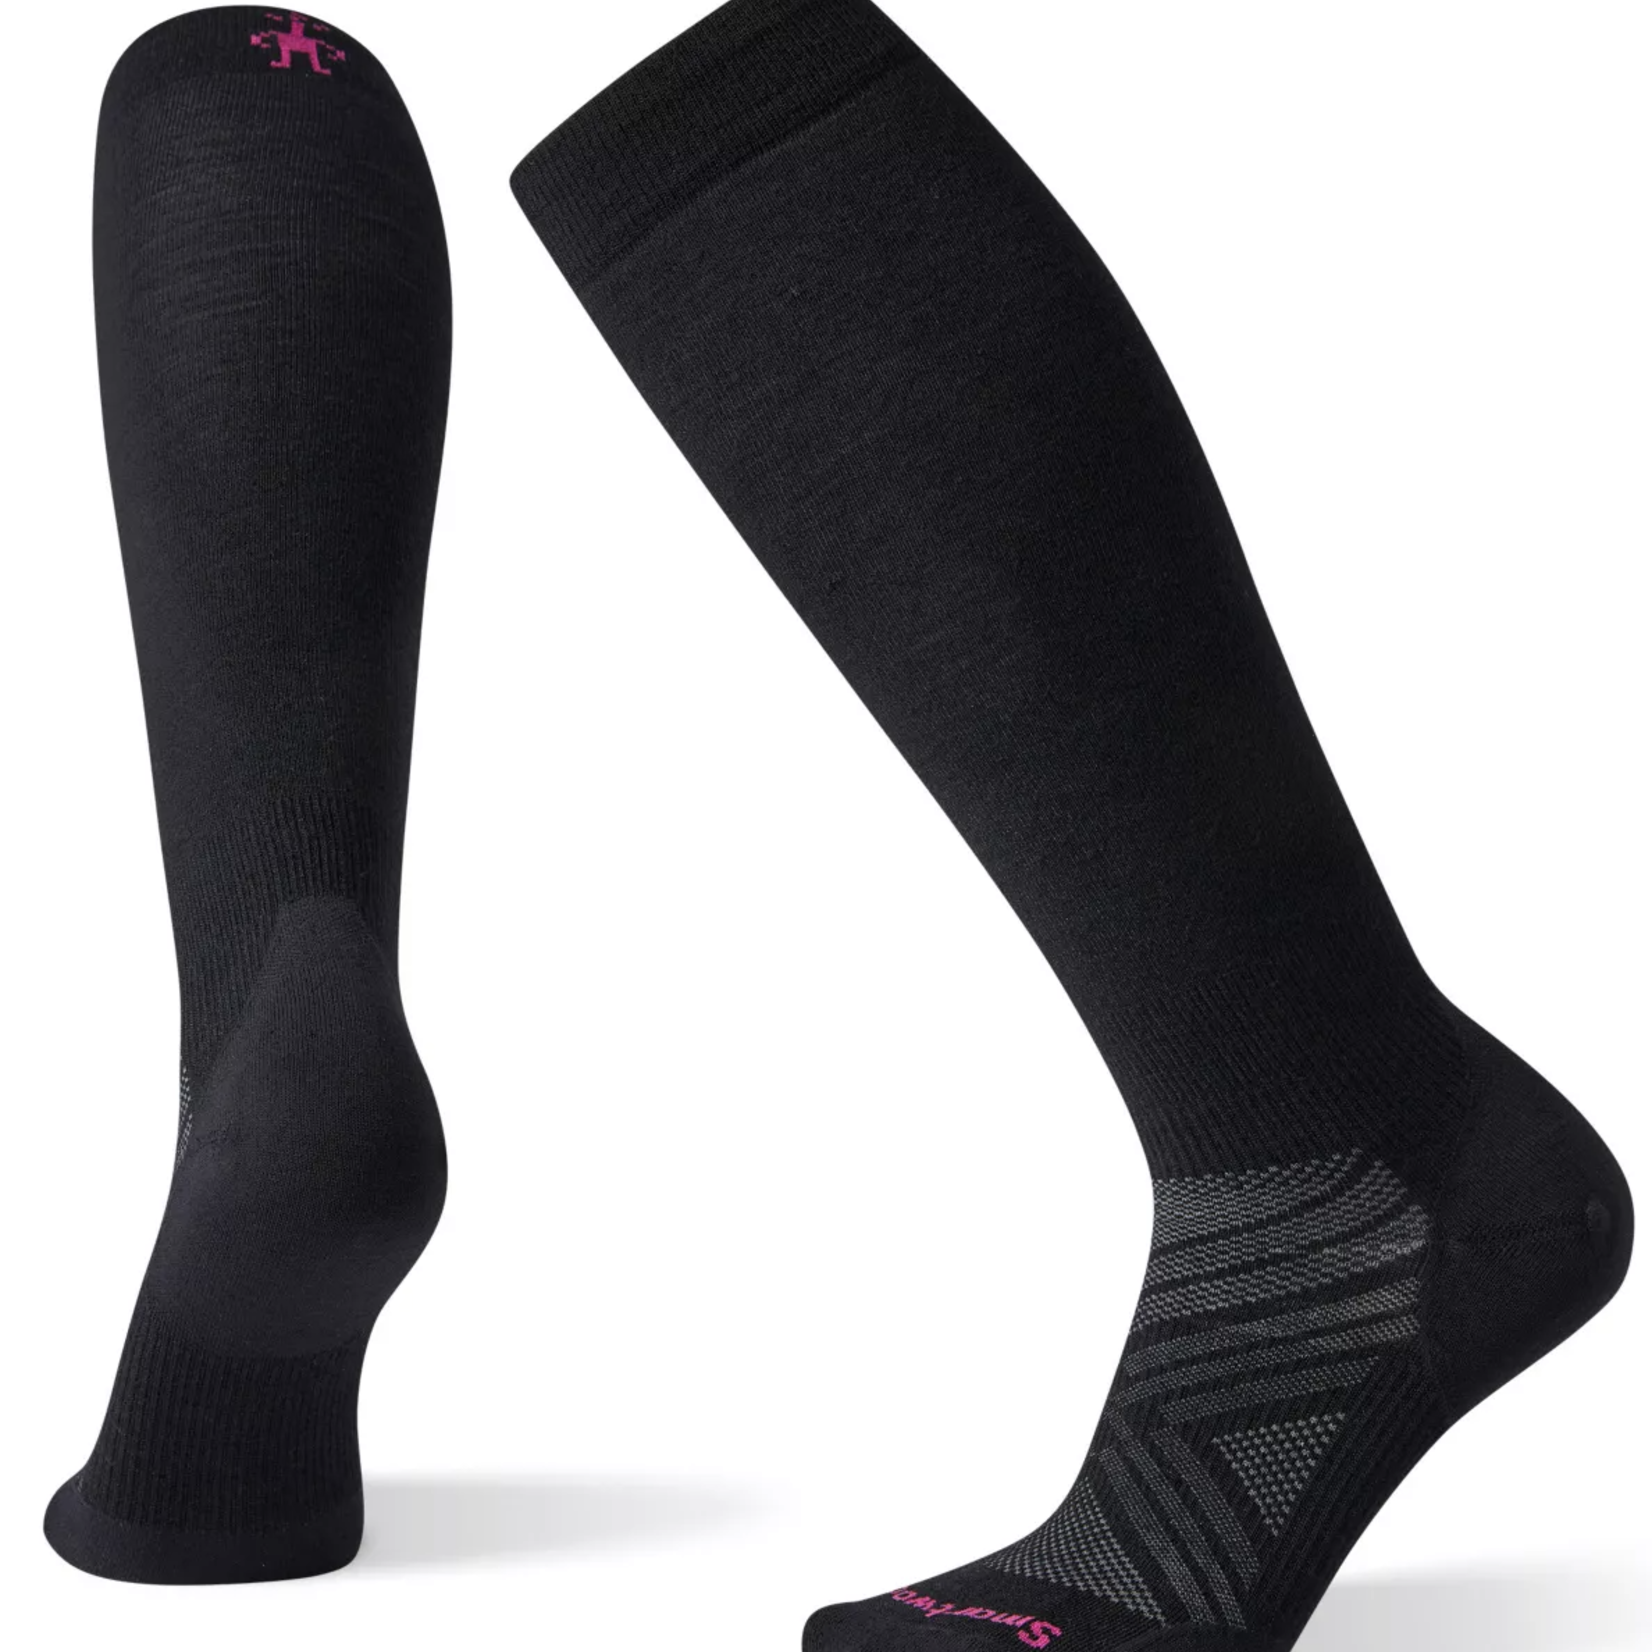 Smartwool Smartwool Womens PHD over the calf